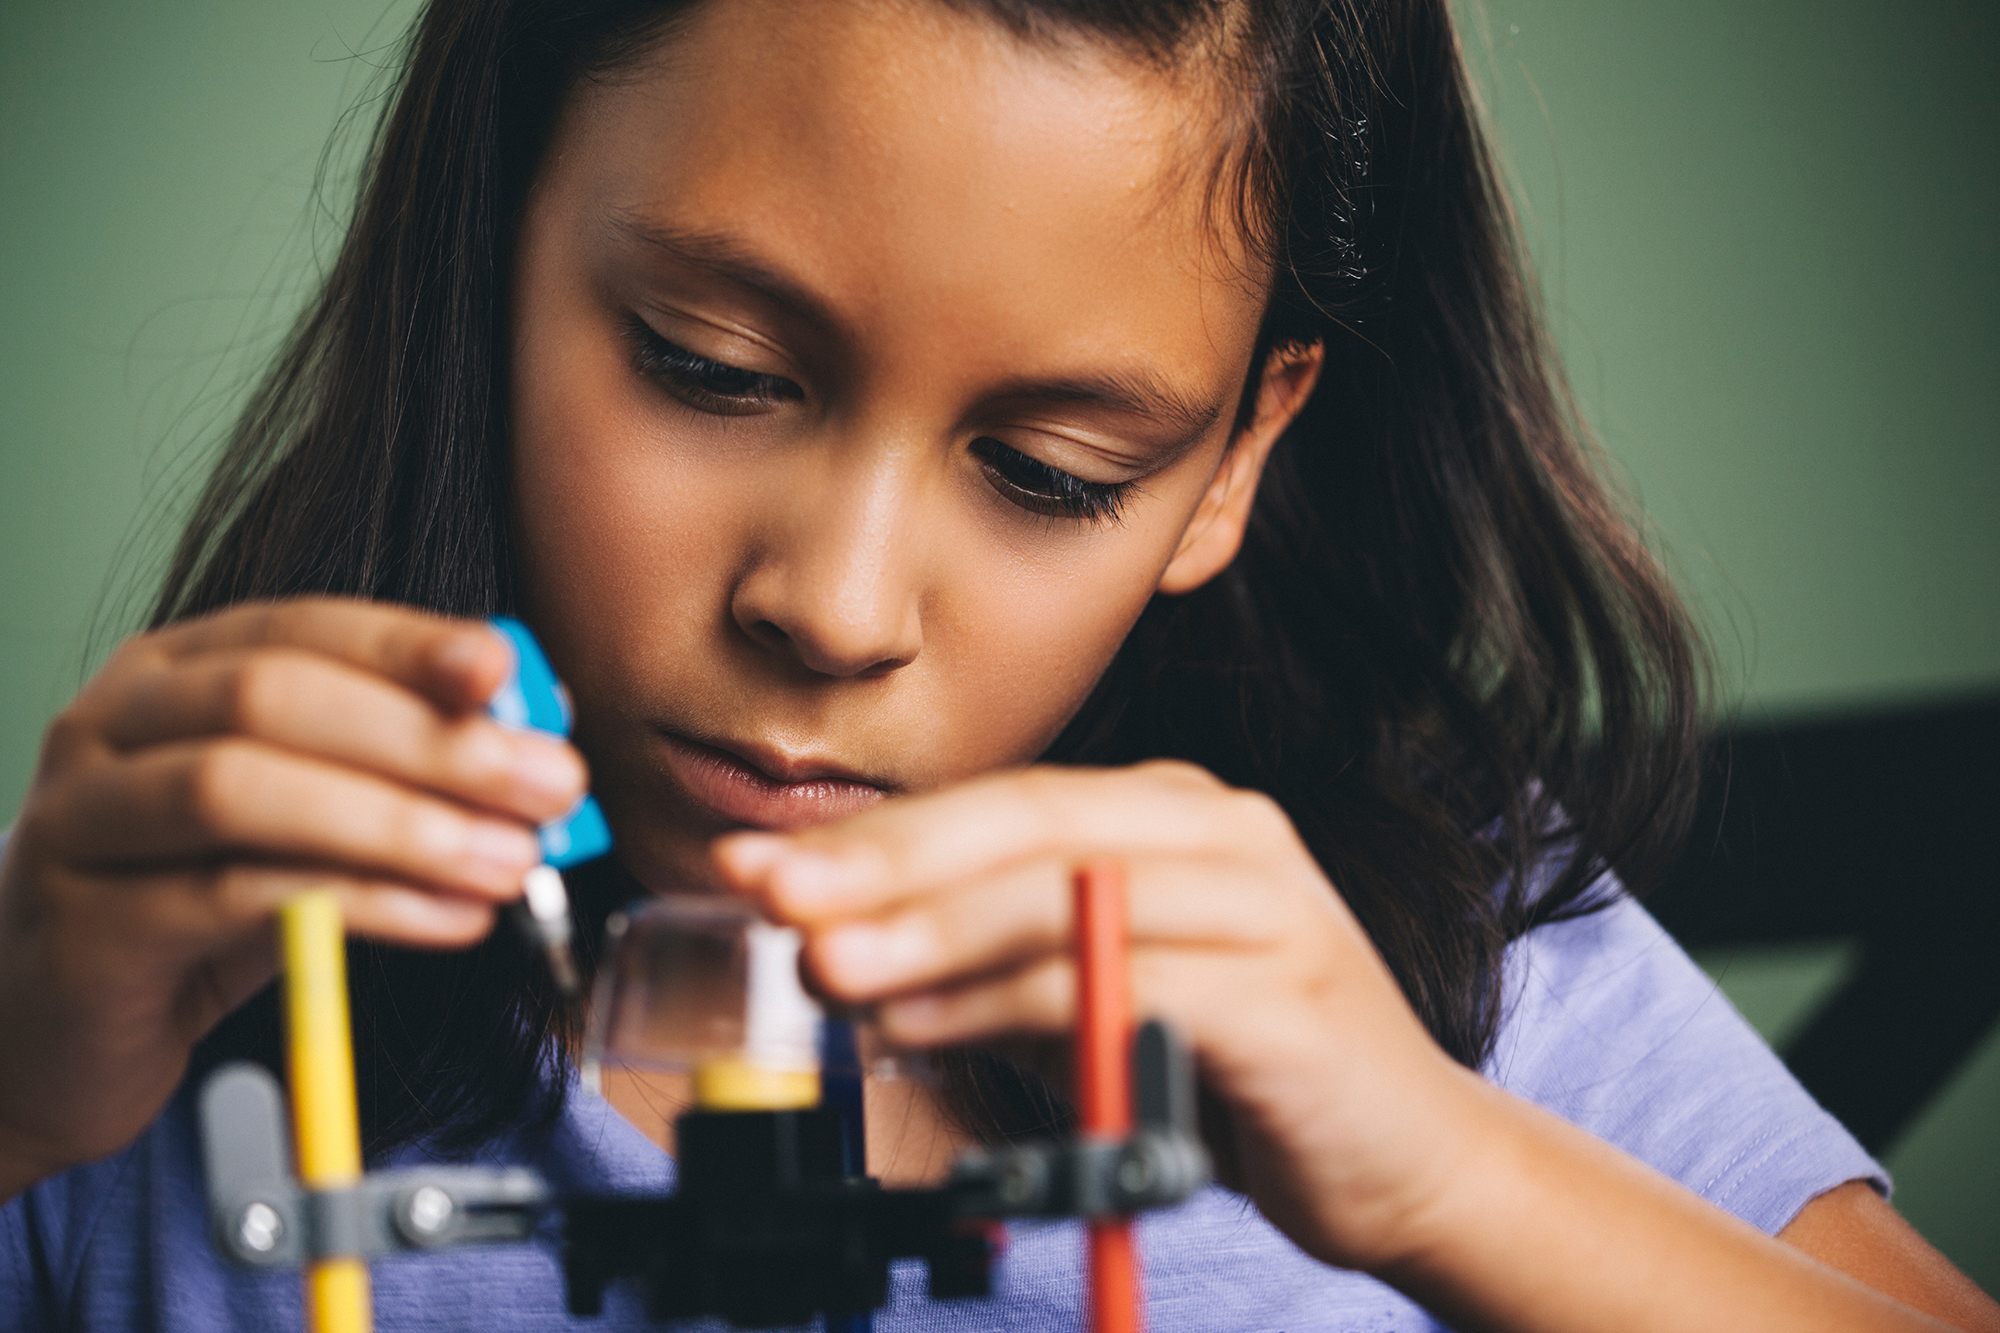 Amazing Toys That Nurture Your Child's Interest In STEM Subjects